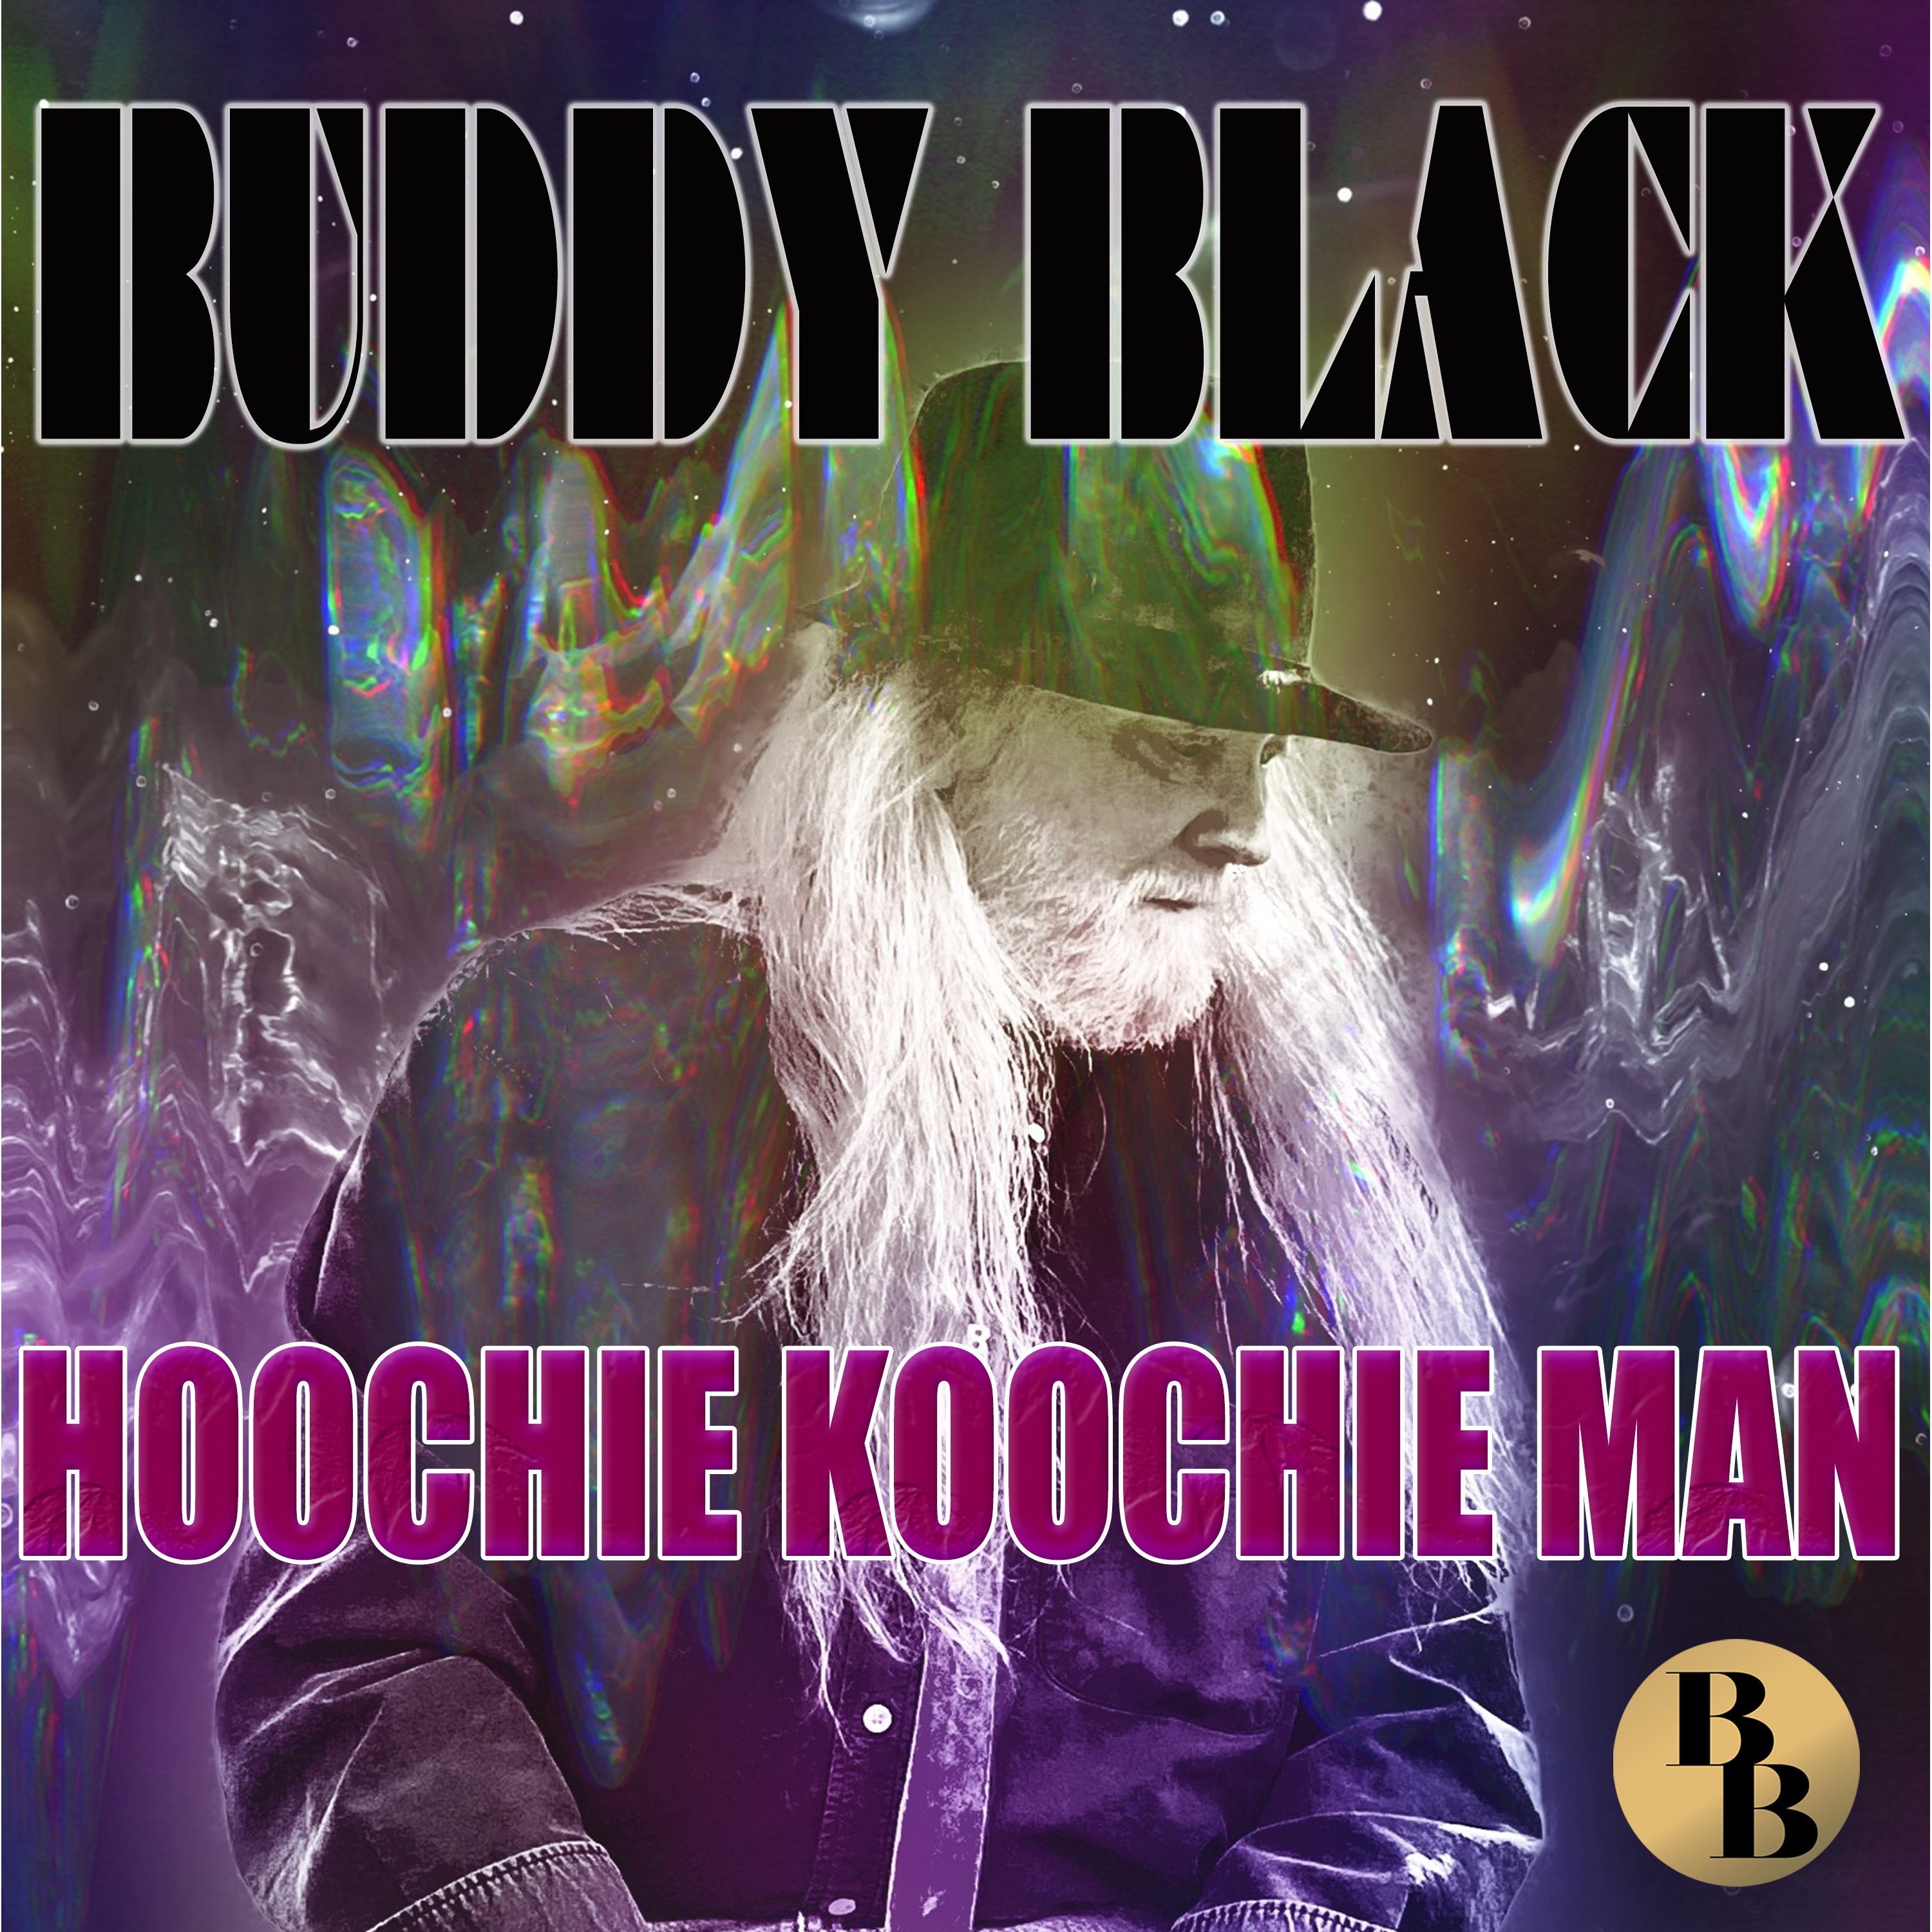 Hoochie Cover